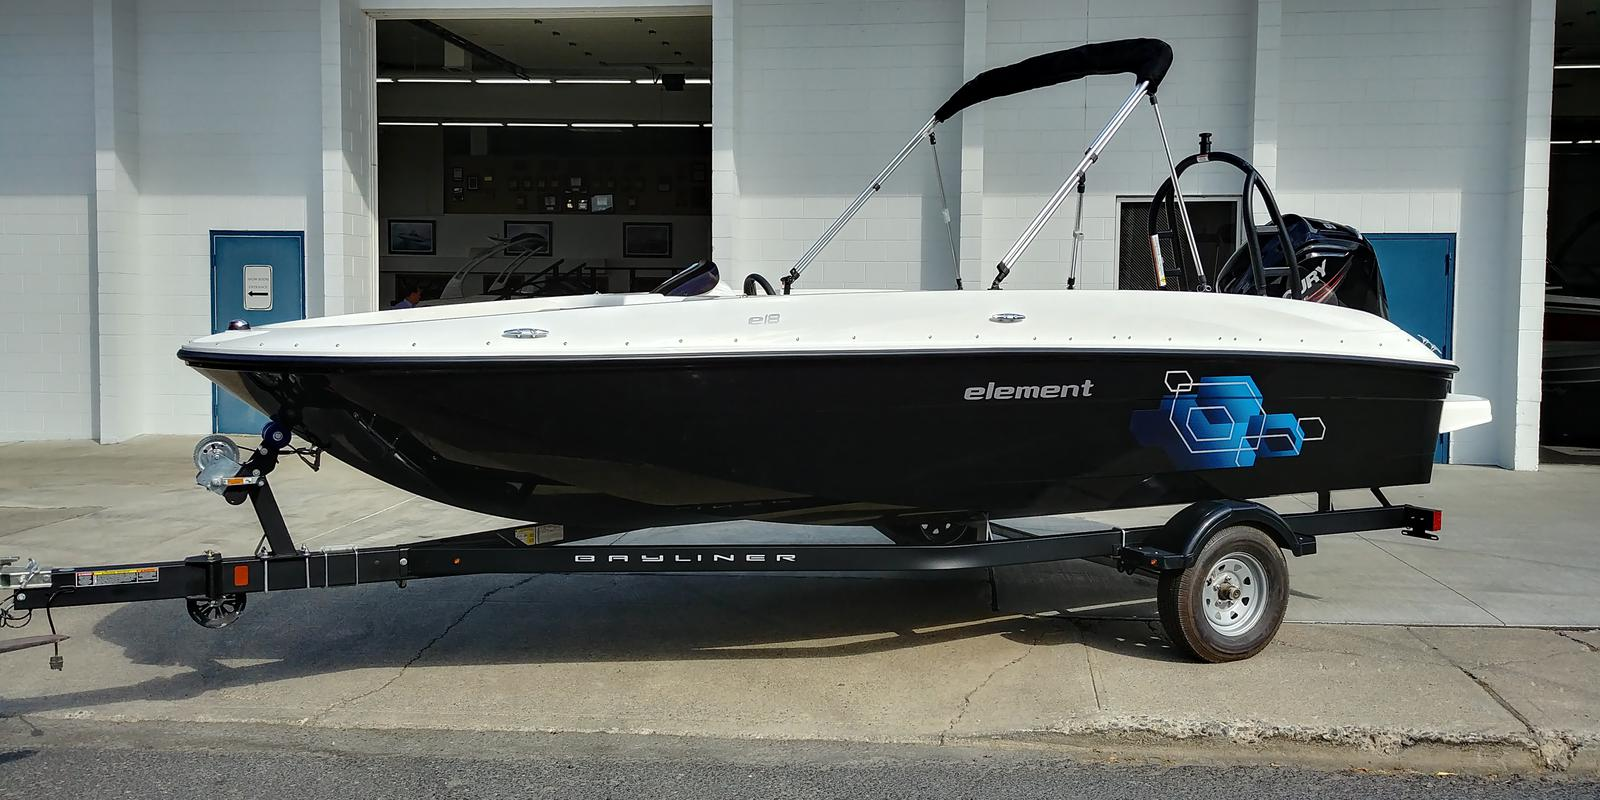 2019 BAYLINER E18 ELEMENT for sale